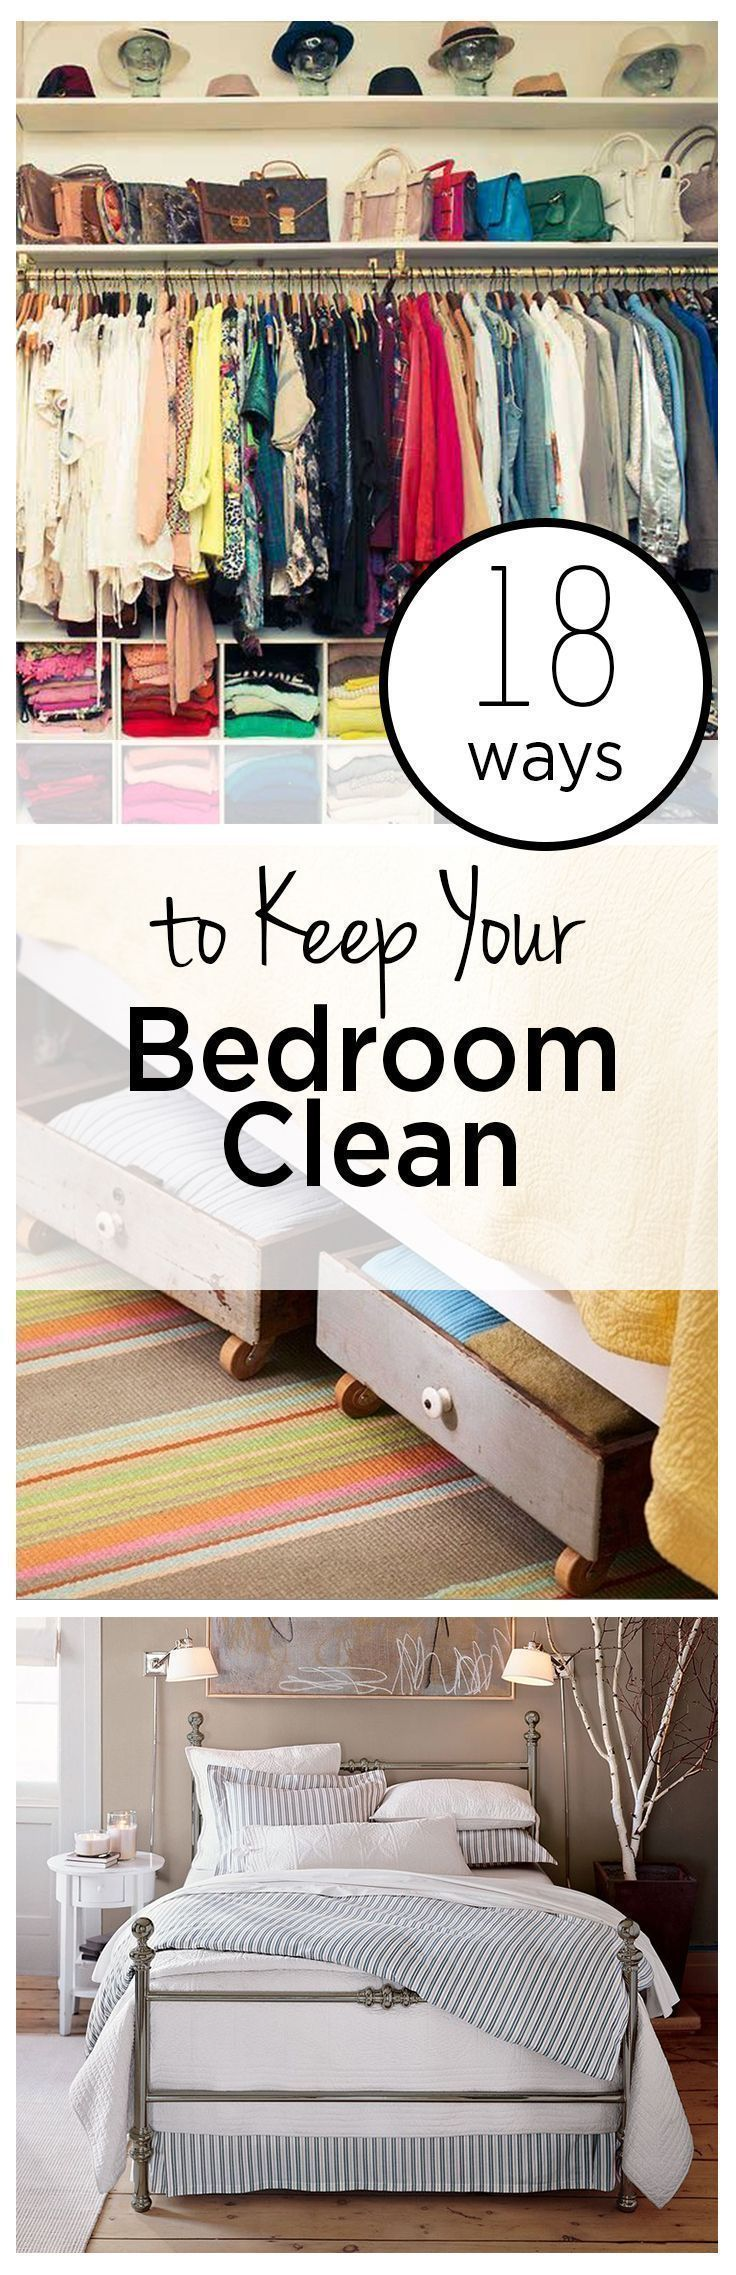 clutter, clutter free living, cleaning, cleaning hacks, popular pin, cleaning tips, cleaning hacks. #clutterfree #clutterhacks #cluttertips